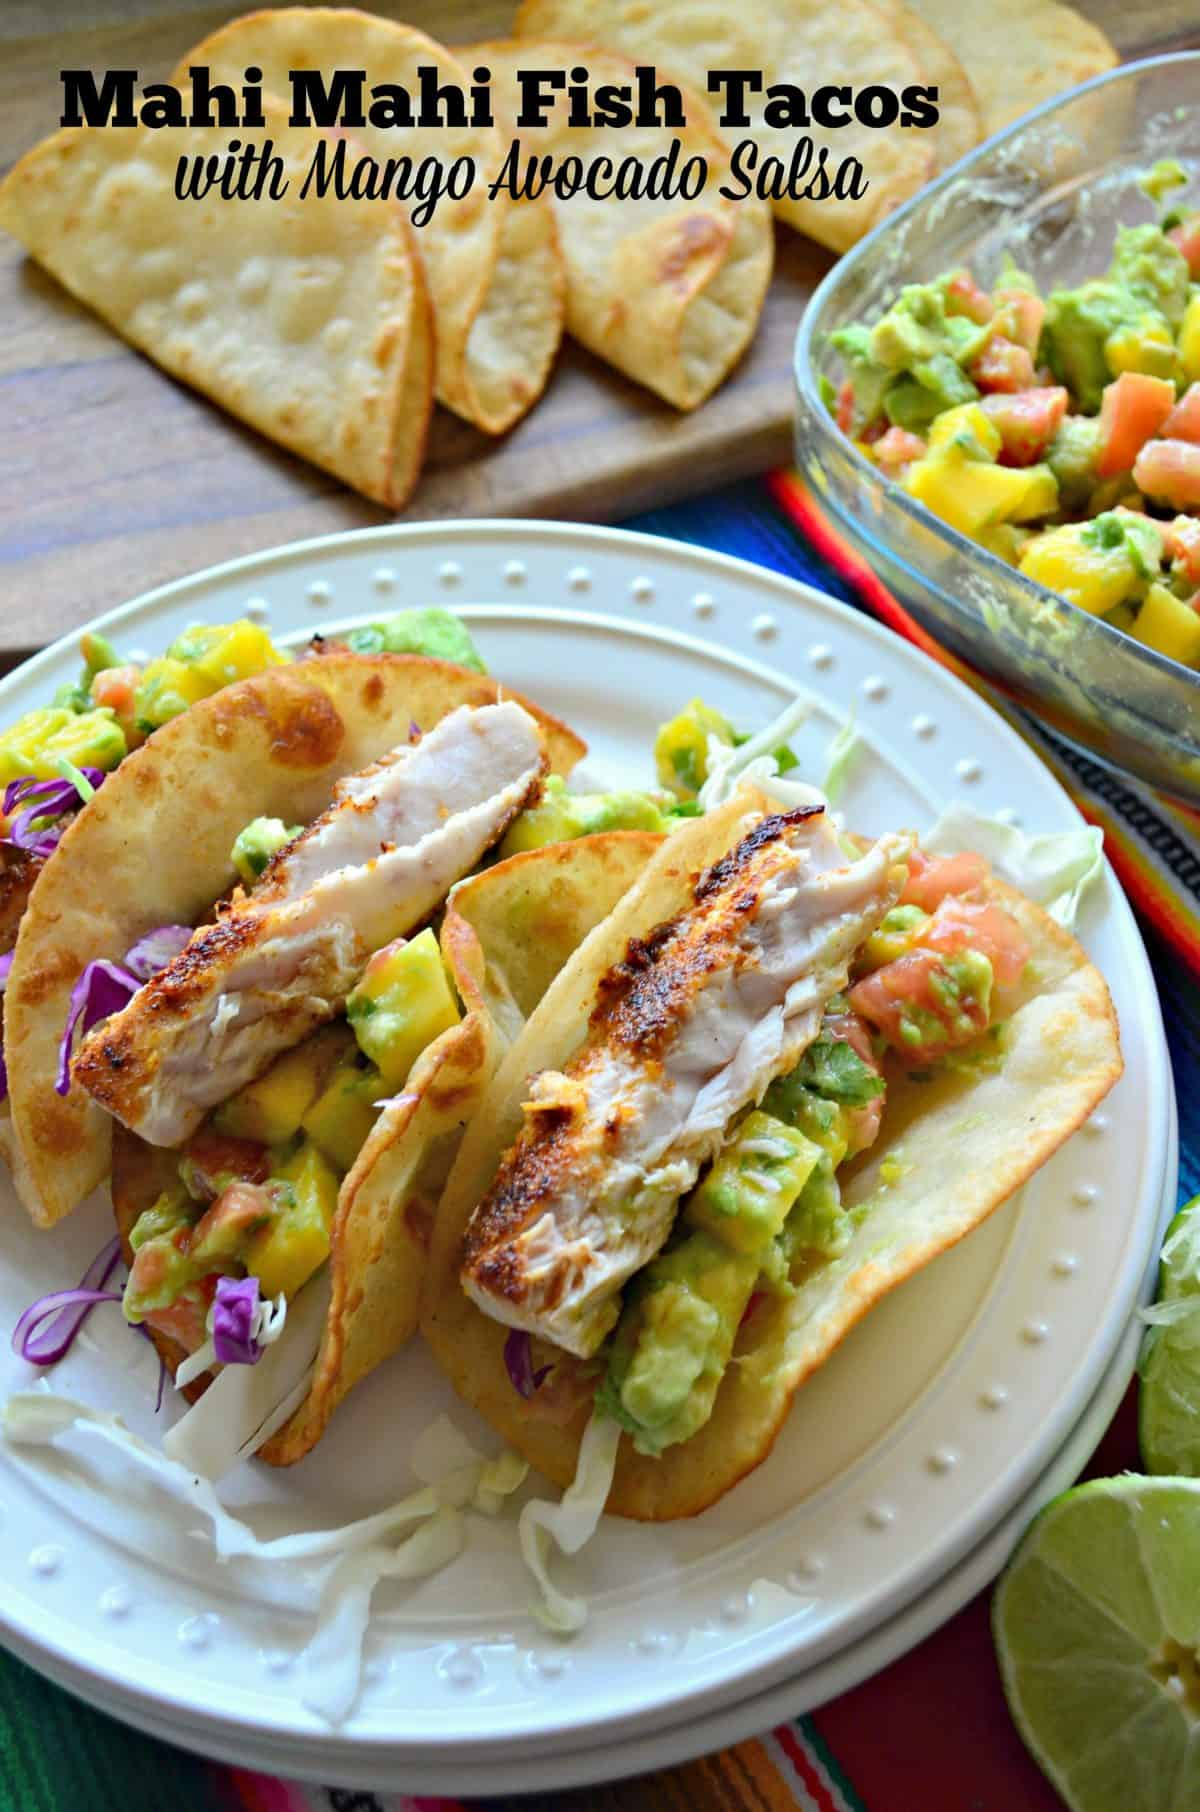 3 plated Mahi Mahi Fish Tacos with Mango Avocado Salsa and purple cabbage with title text.